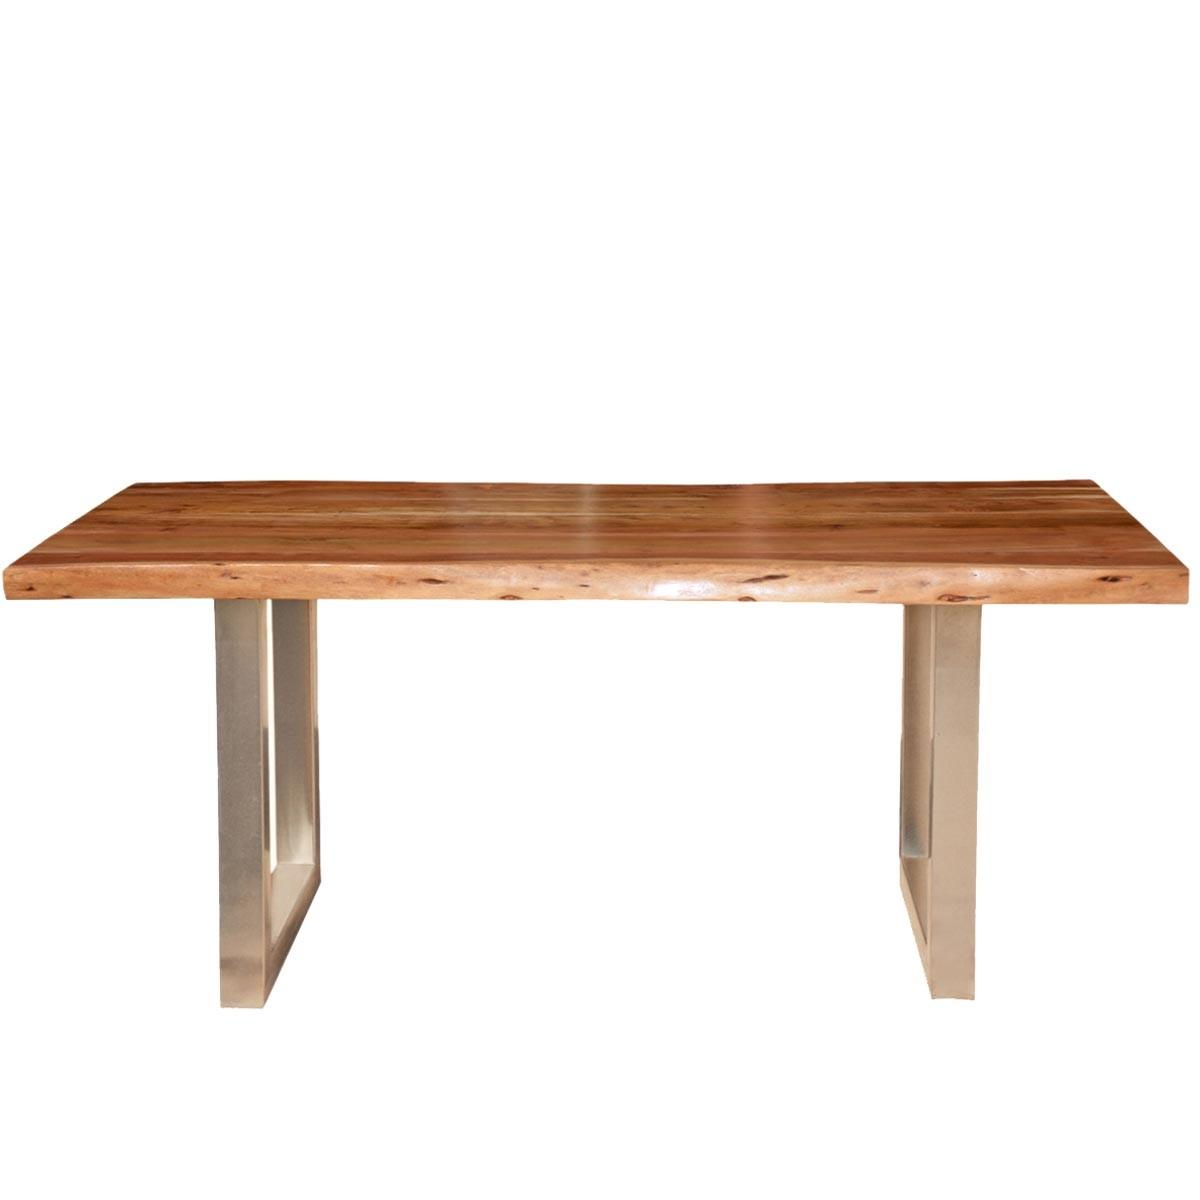 Acacia Wood Rustic Live Edge Dining Table Industrial